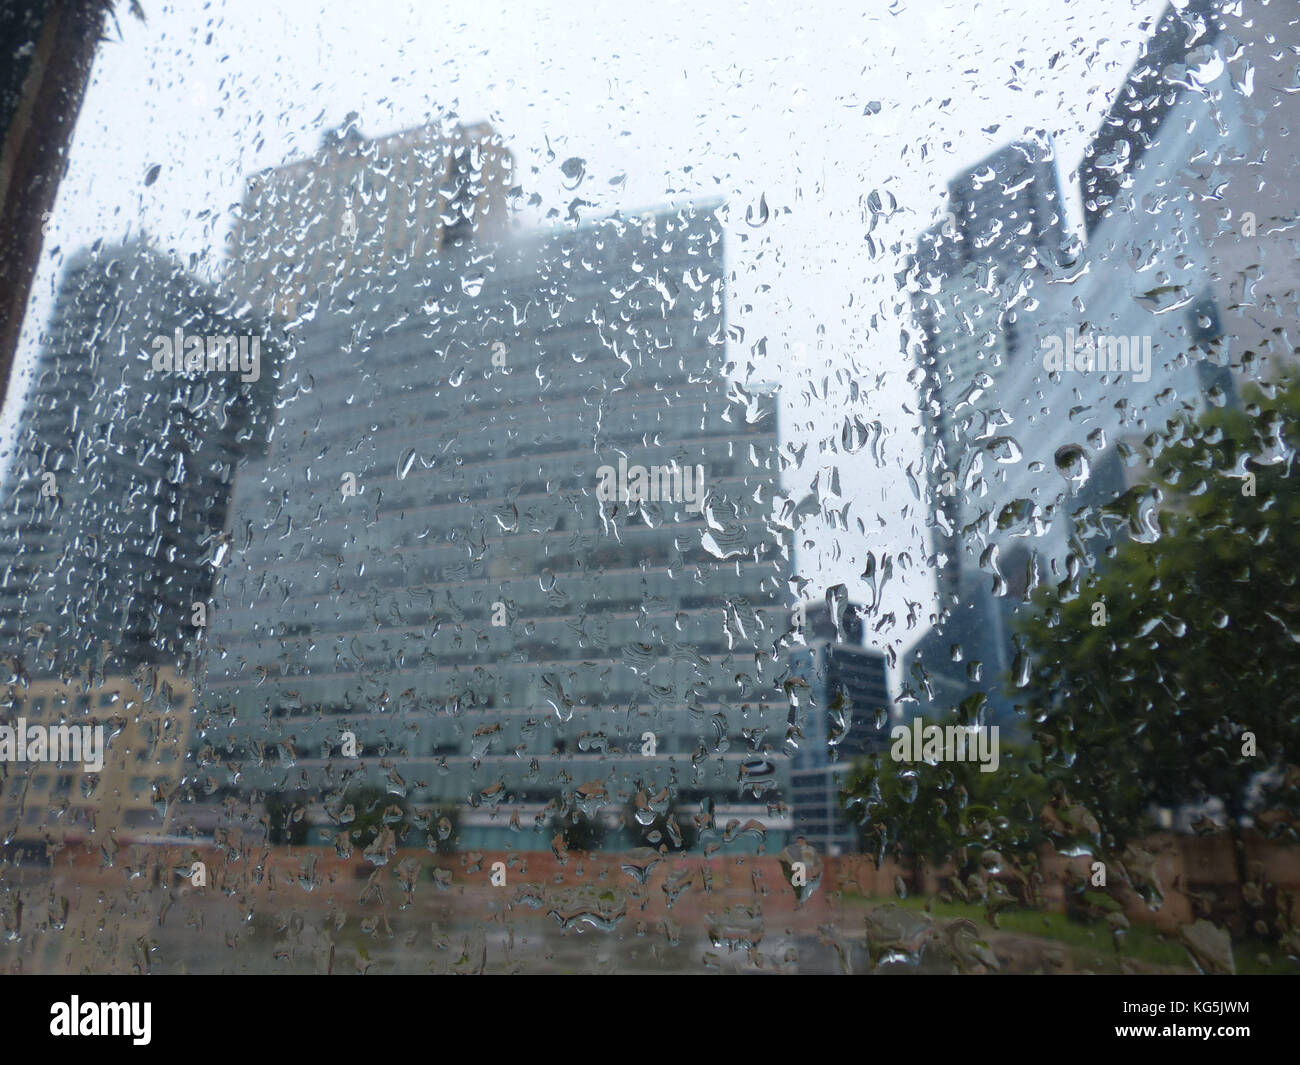 Queens, New York, new office buildings in Long Island City photographed through rained on glass - Stock Image